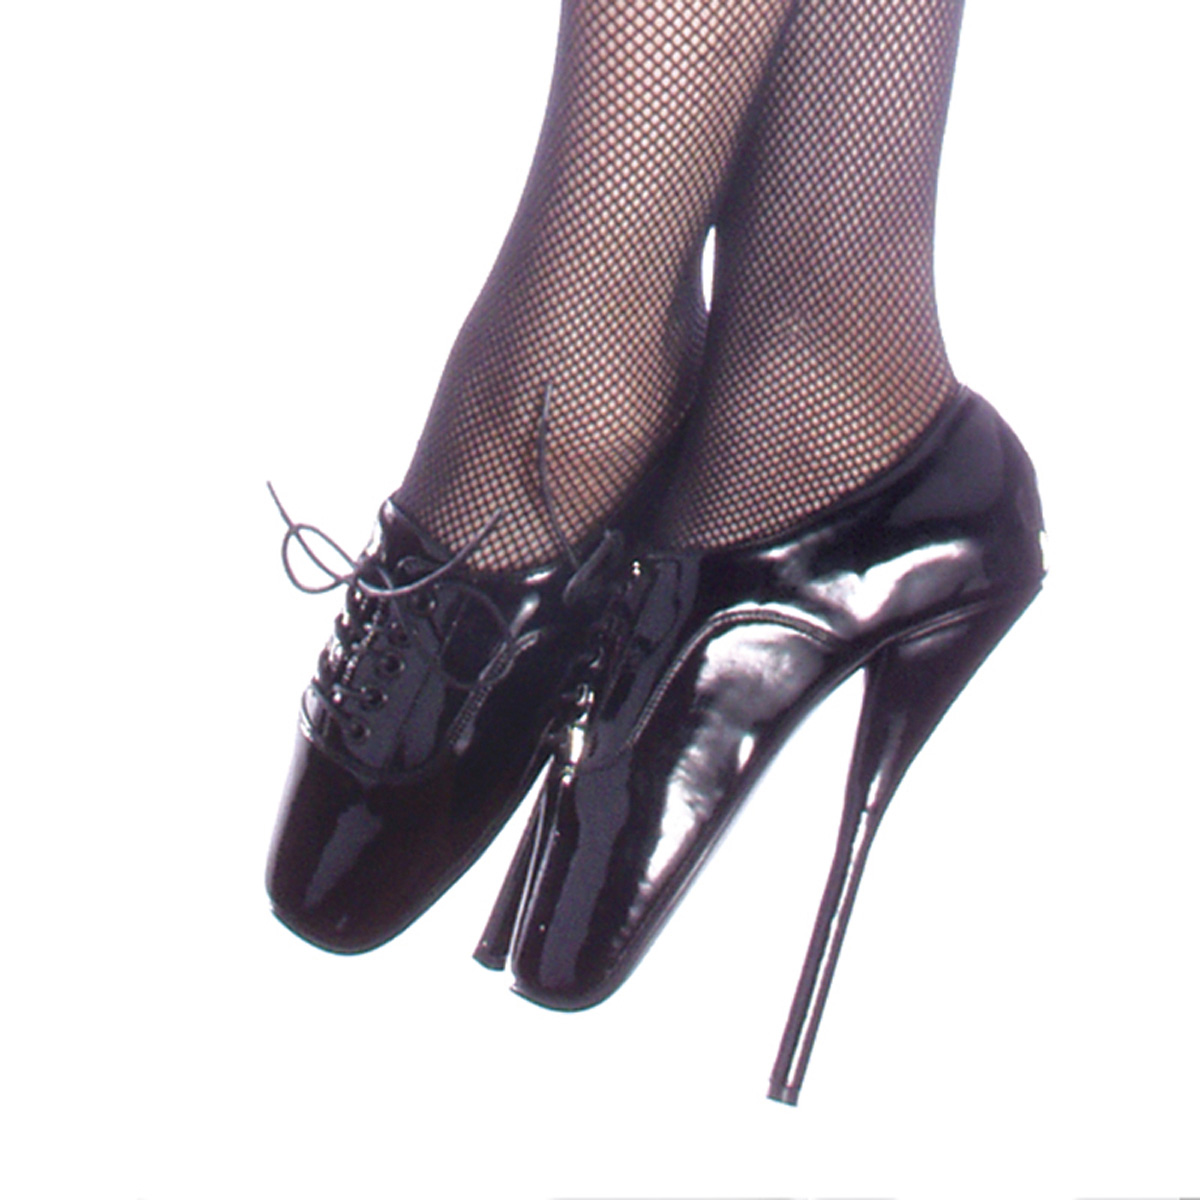 "DEVIOUS BALLET-18 7"" Heel Shoes/Blk Pat"